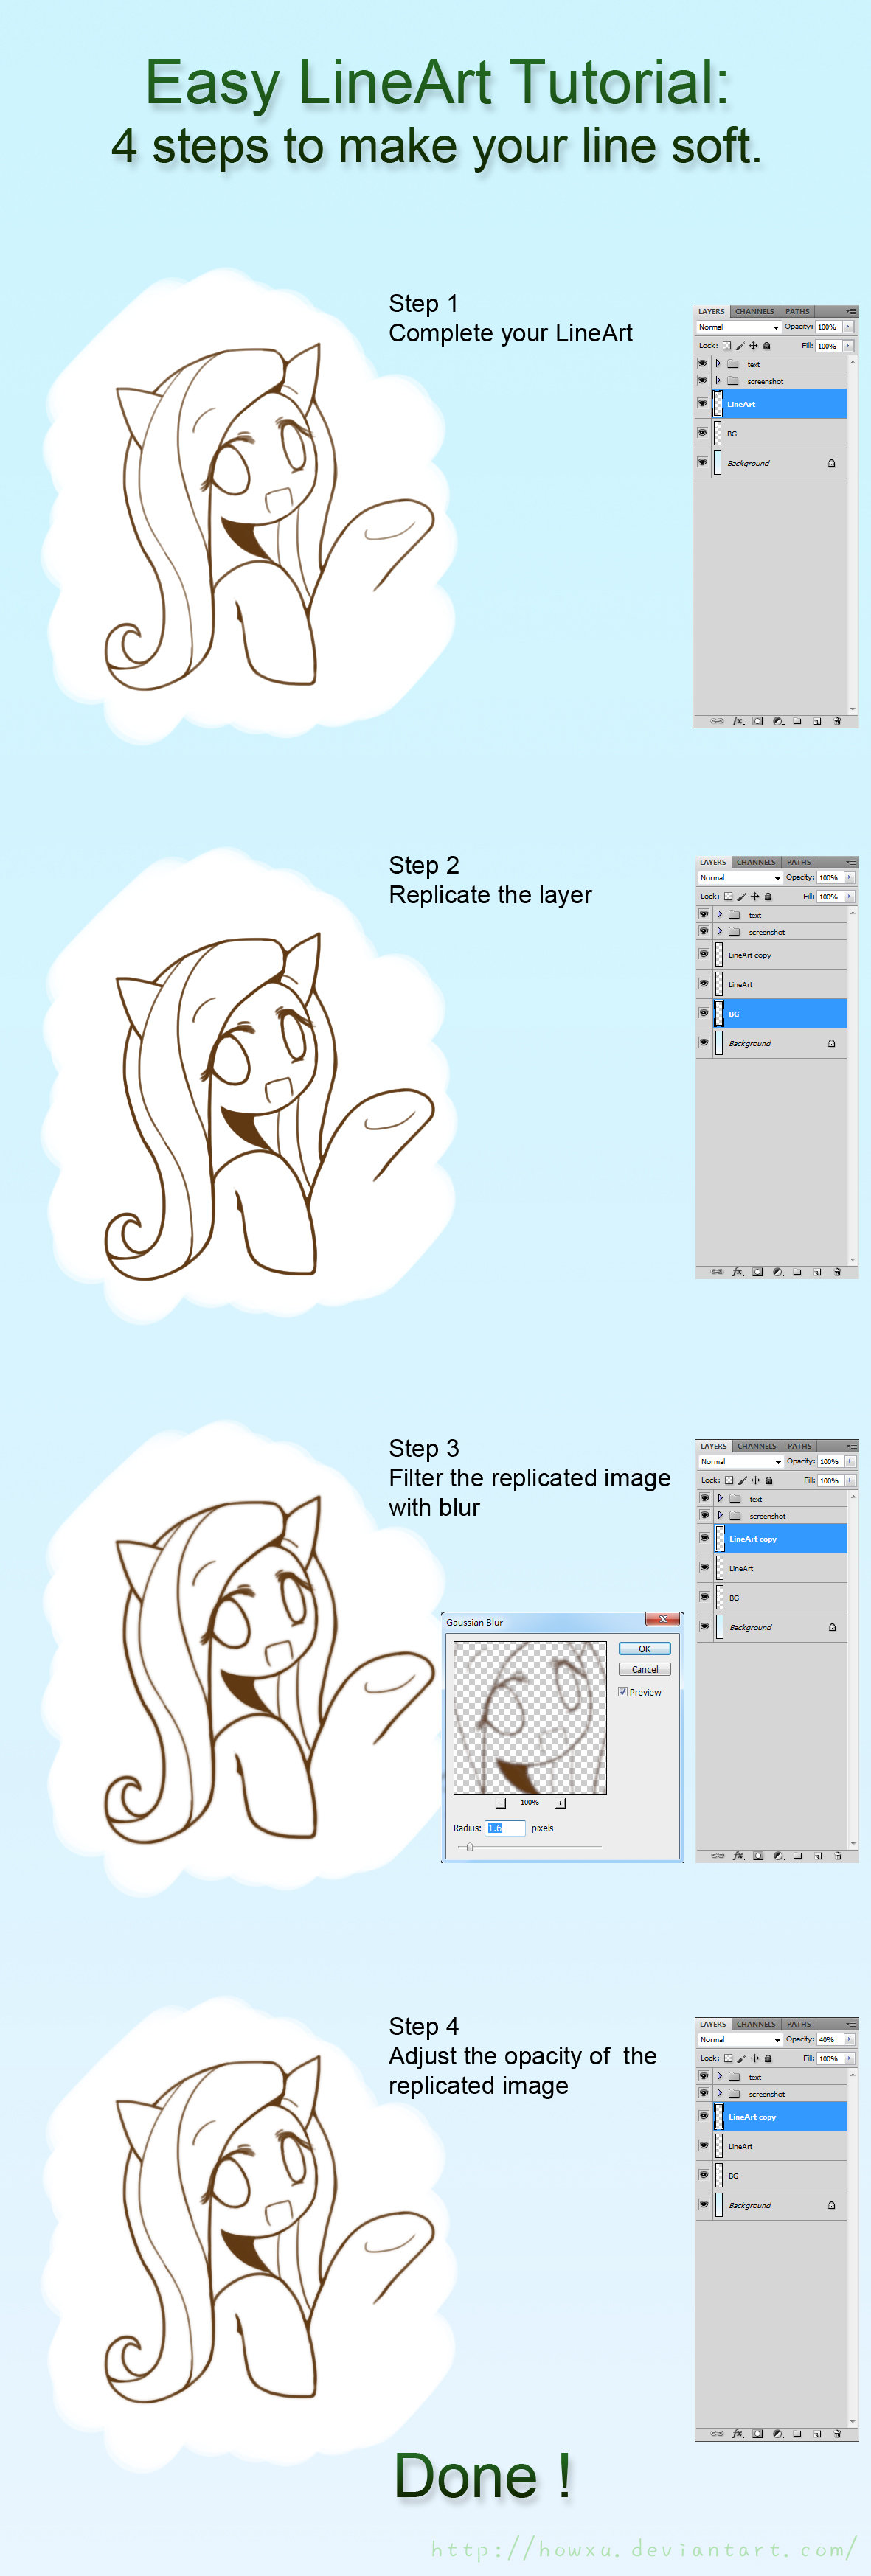 Easy lineart tutorial by howxu on deviantart easy lineart tutorial by howxu easy lineart tutorial by howxu baditri Choice Image